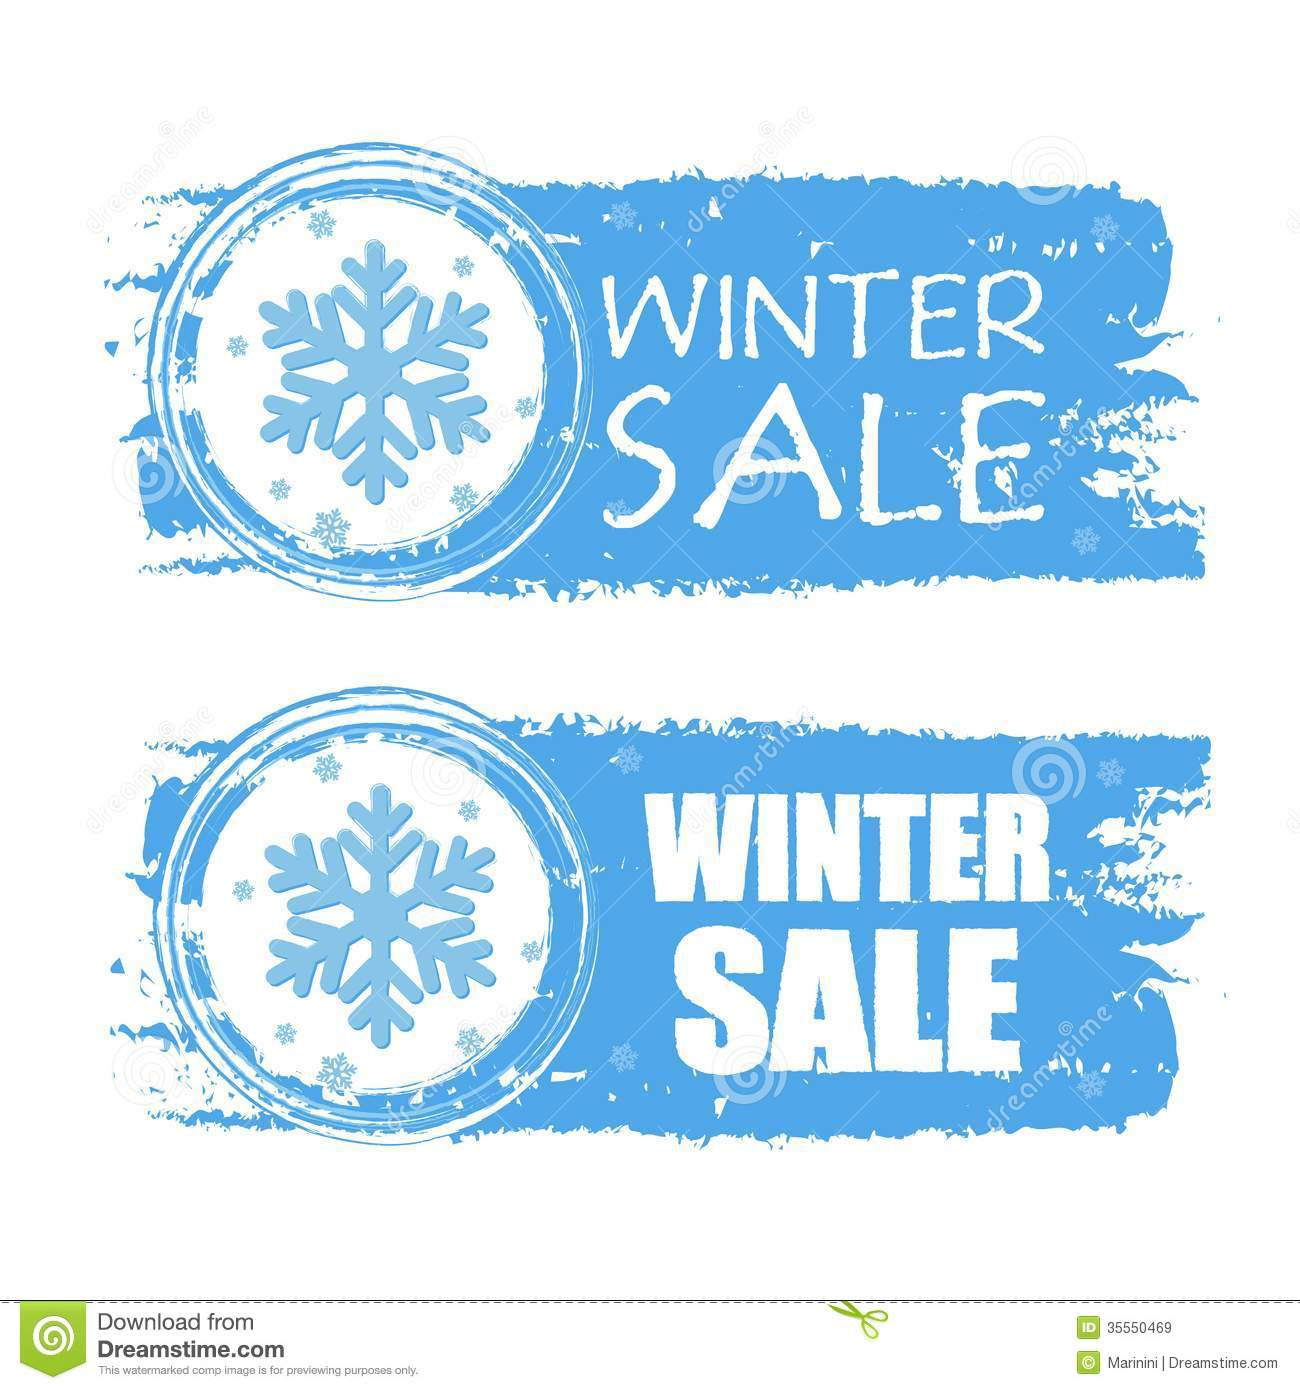 winter sale with snowflake on blue drawn banners stock